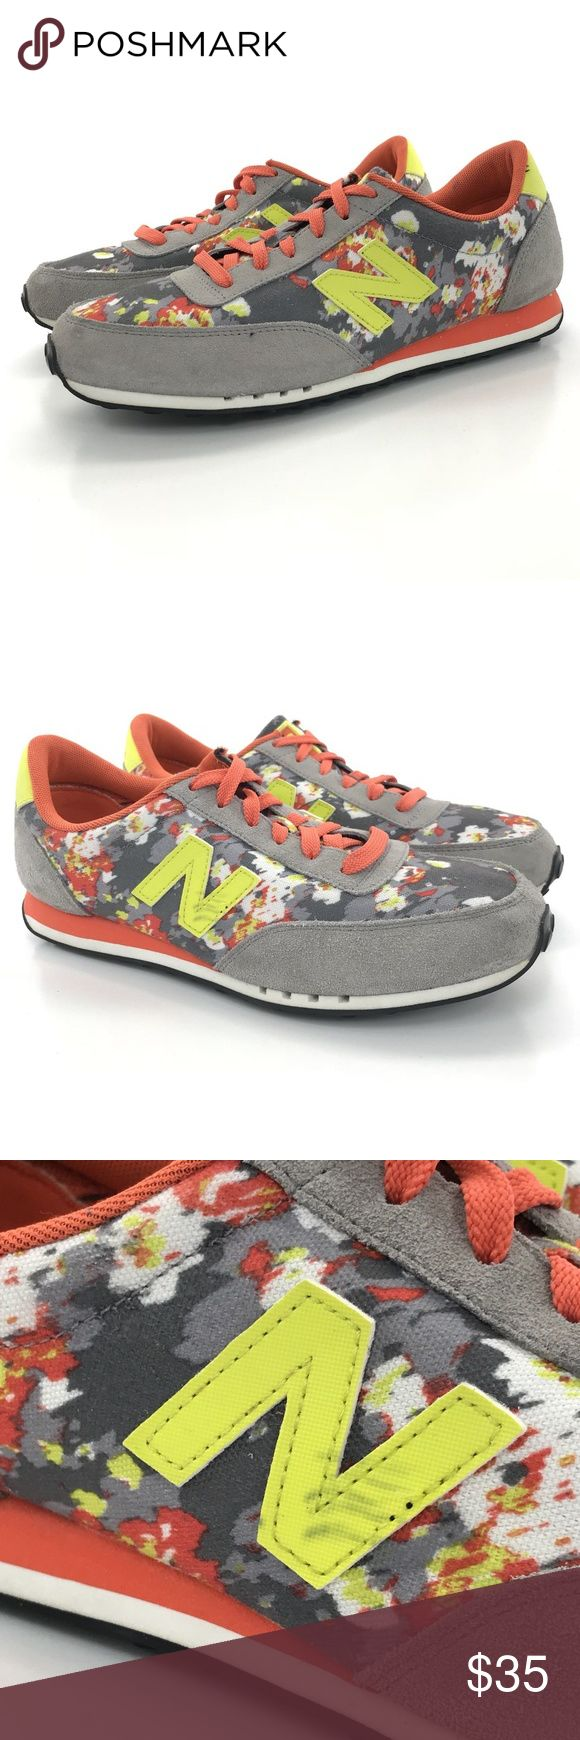 New Balance 410 floral Blur Suede Canvas Shoes New Balance 410 floral Blur Women's Size 11 Grey Orange Yellow  Lace Up Suede Canvas Casual Sneaker  BRAND: New Balance SIZE/WIDTH: 11 STYLE#/NAME: WL410SL 410 floral Blur TYPE: Casual Sneaker COLOR: Floral Grey Orange Yellow FASTENING: Lace-Up MATERIAL: Suede Canvas CONDITION: Very Good preowned condition with normal signs of light use. These Do have what looks like pen marks on the N of the outer right shoe. Otherwise only light wear to the…